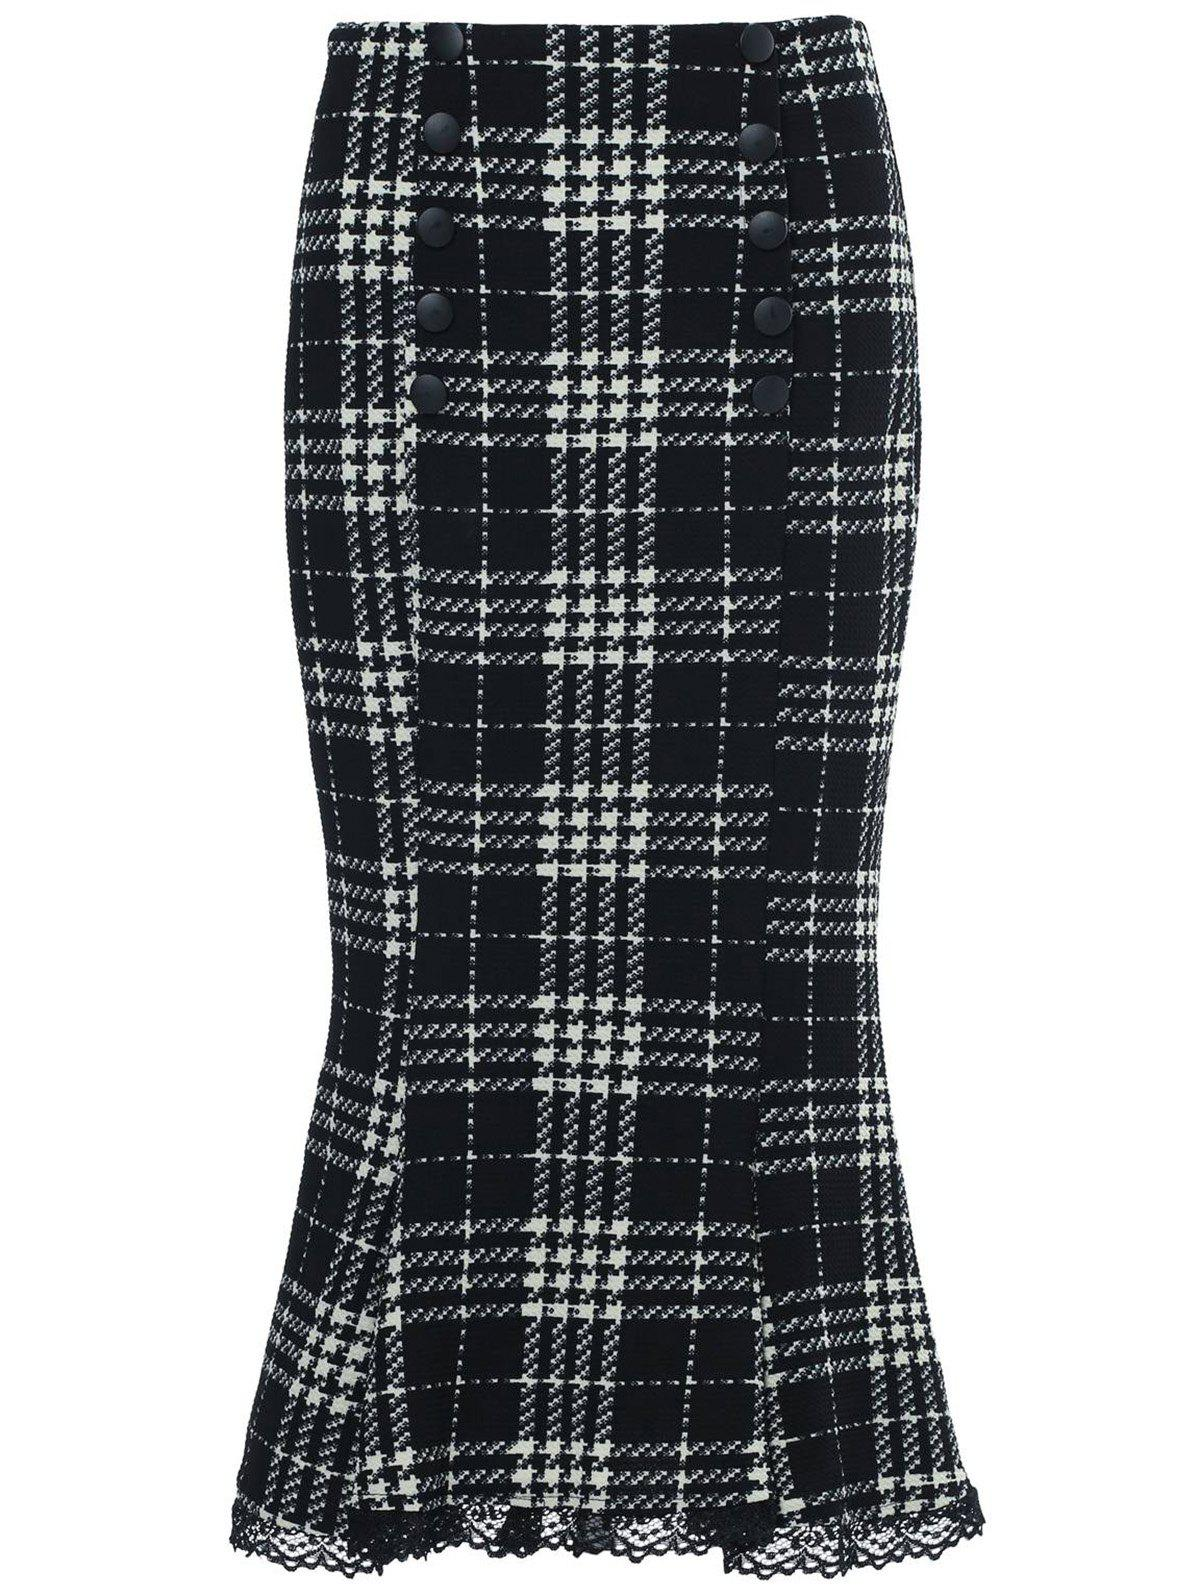 Stylish Women's Houndstooth Buttoned Midi Fishtail Skirt - WHITE/BLACK S